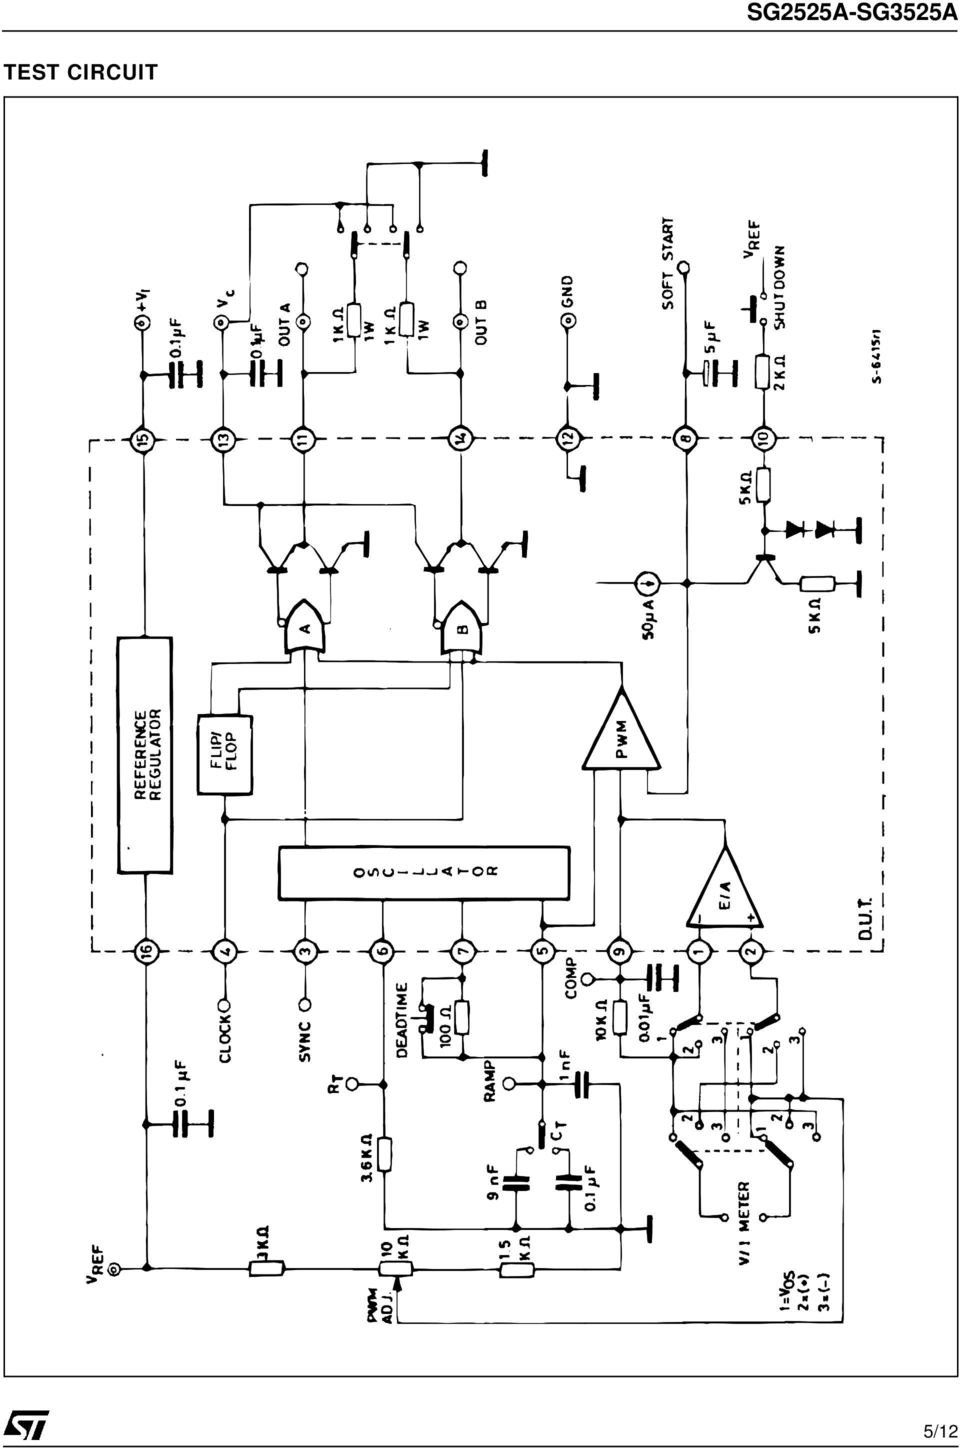 Sg2525a Sg3525a Regulating Pulse Width Modulators Pdf Stepup Dcdc Converter In This Circuit Used Ic Tda2822m Which Is Dual 6 Recommended Operating Conditions Parameter Value Input Voltage V I 8 To 35 Collector Supply C 45